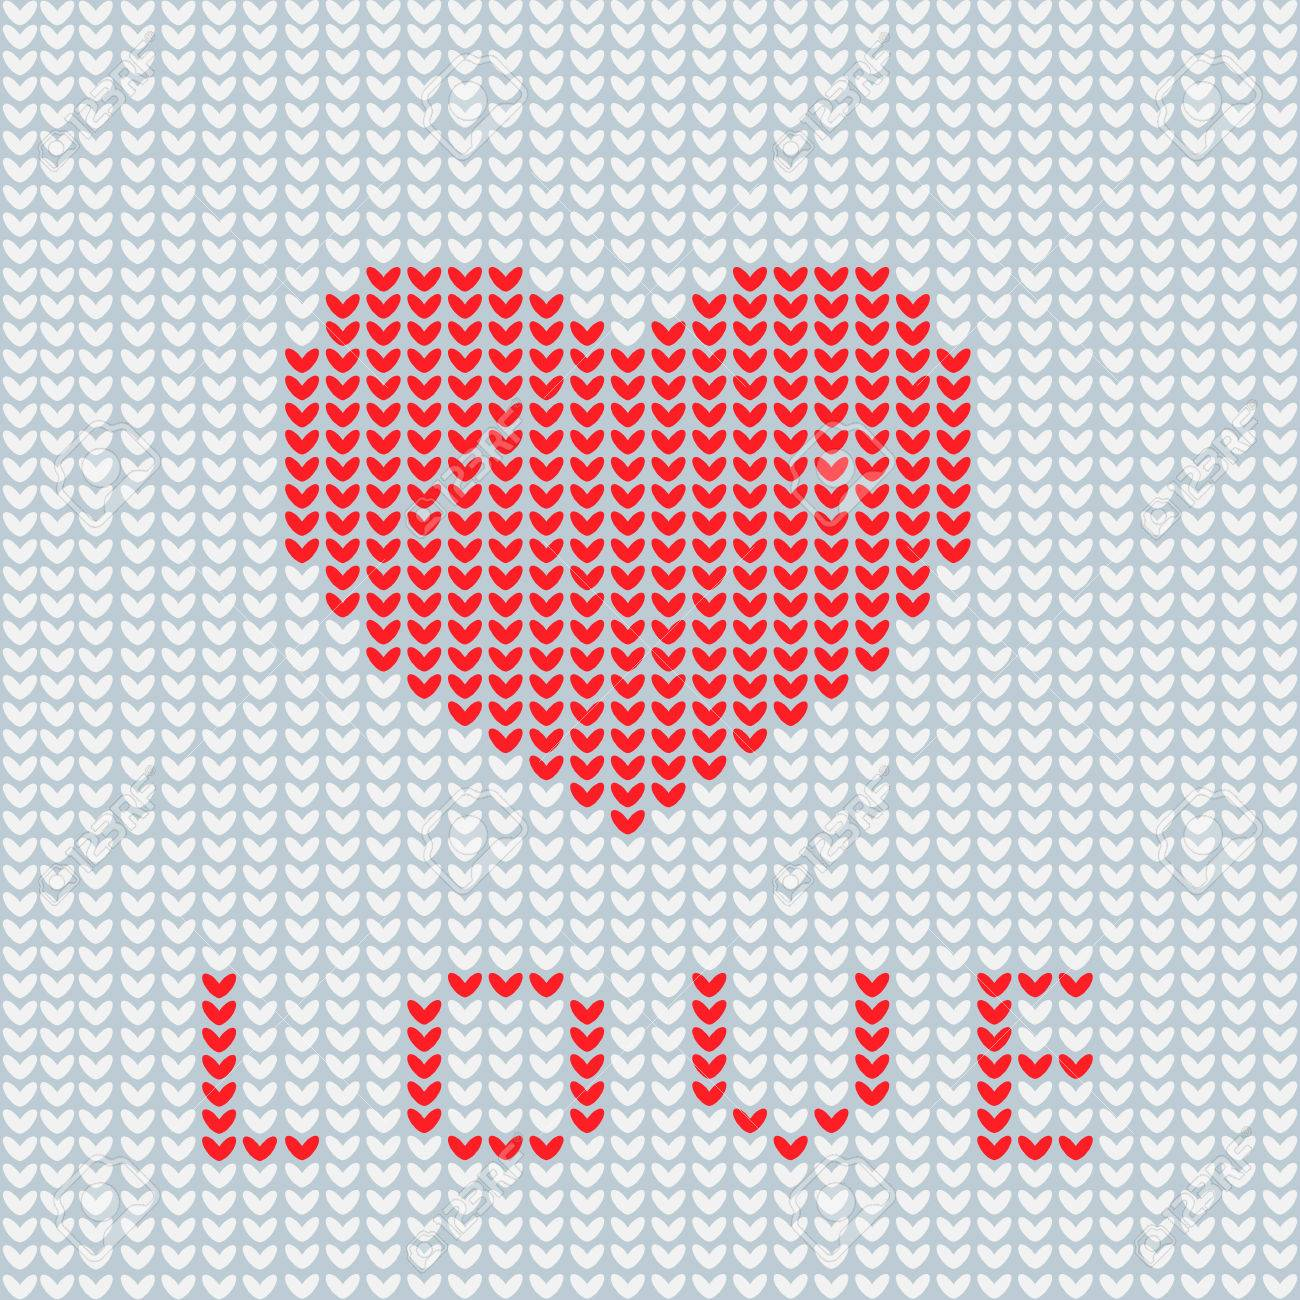 Knitting Is Love. Knitted Heart Symbol. Modern Vector Knitting ...